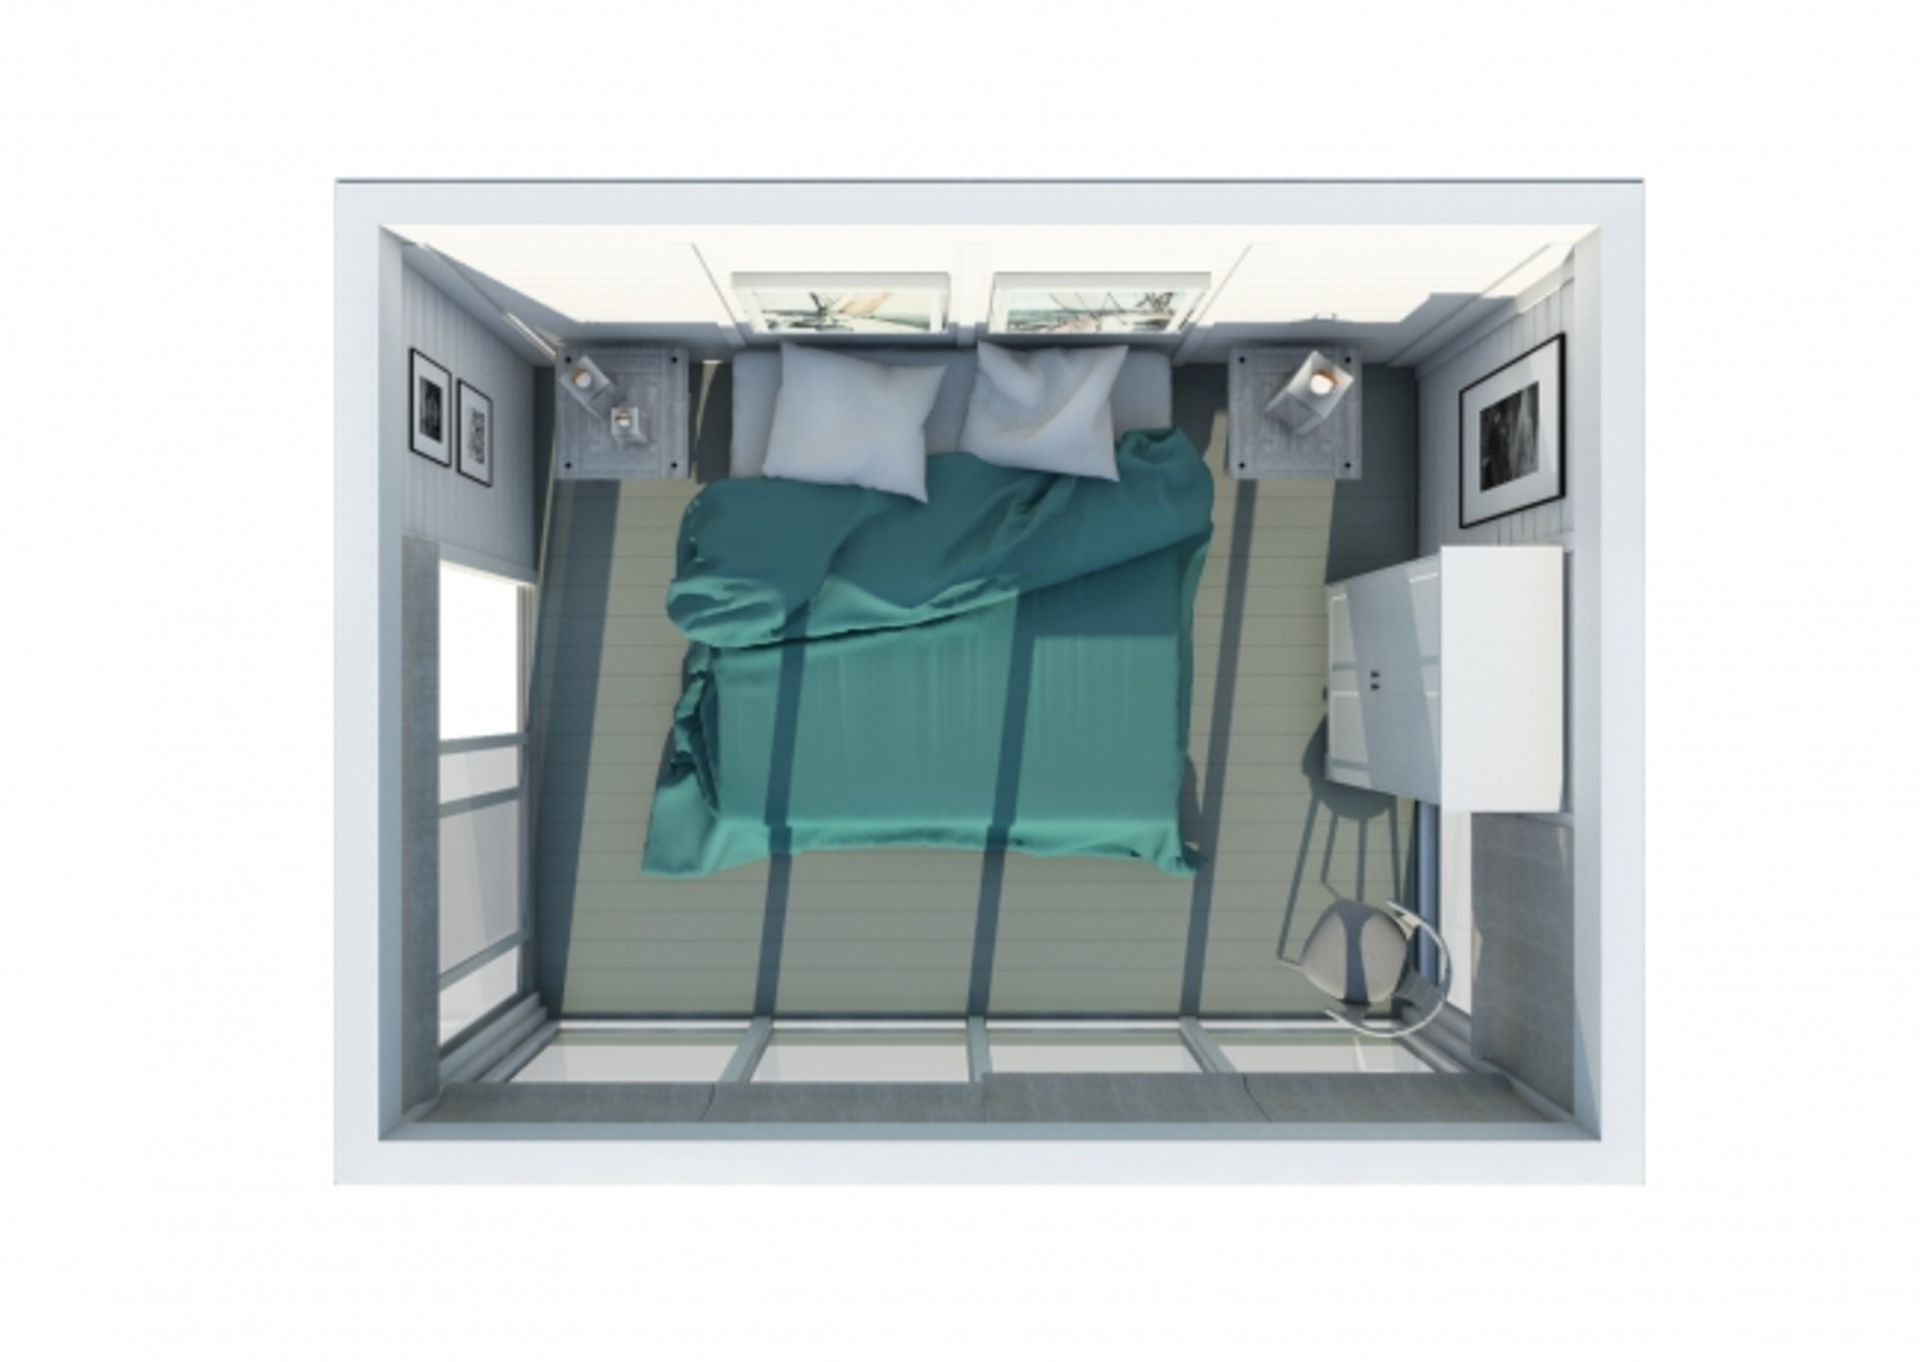 Lot 18029 - V Brand New Insulated Cube Hotel Room Cabin - 3 x 4m - Insulated Walls + Glass Sliding Doors -